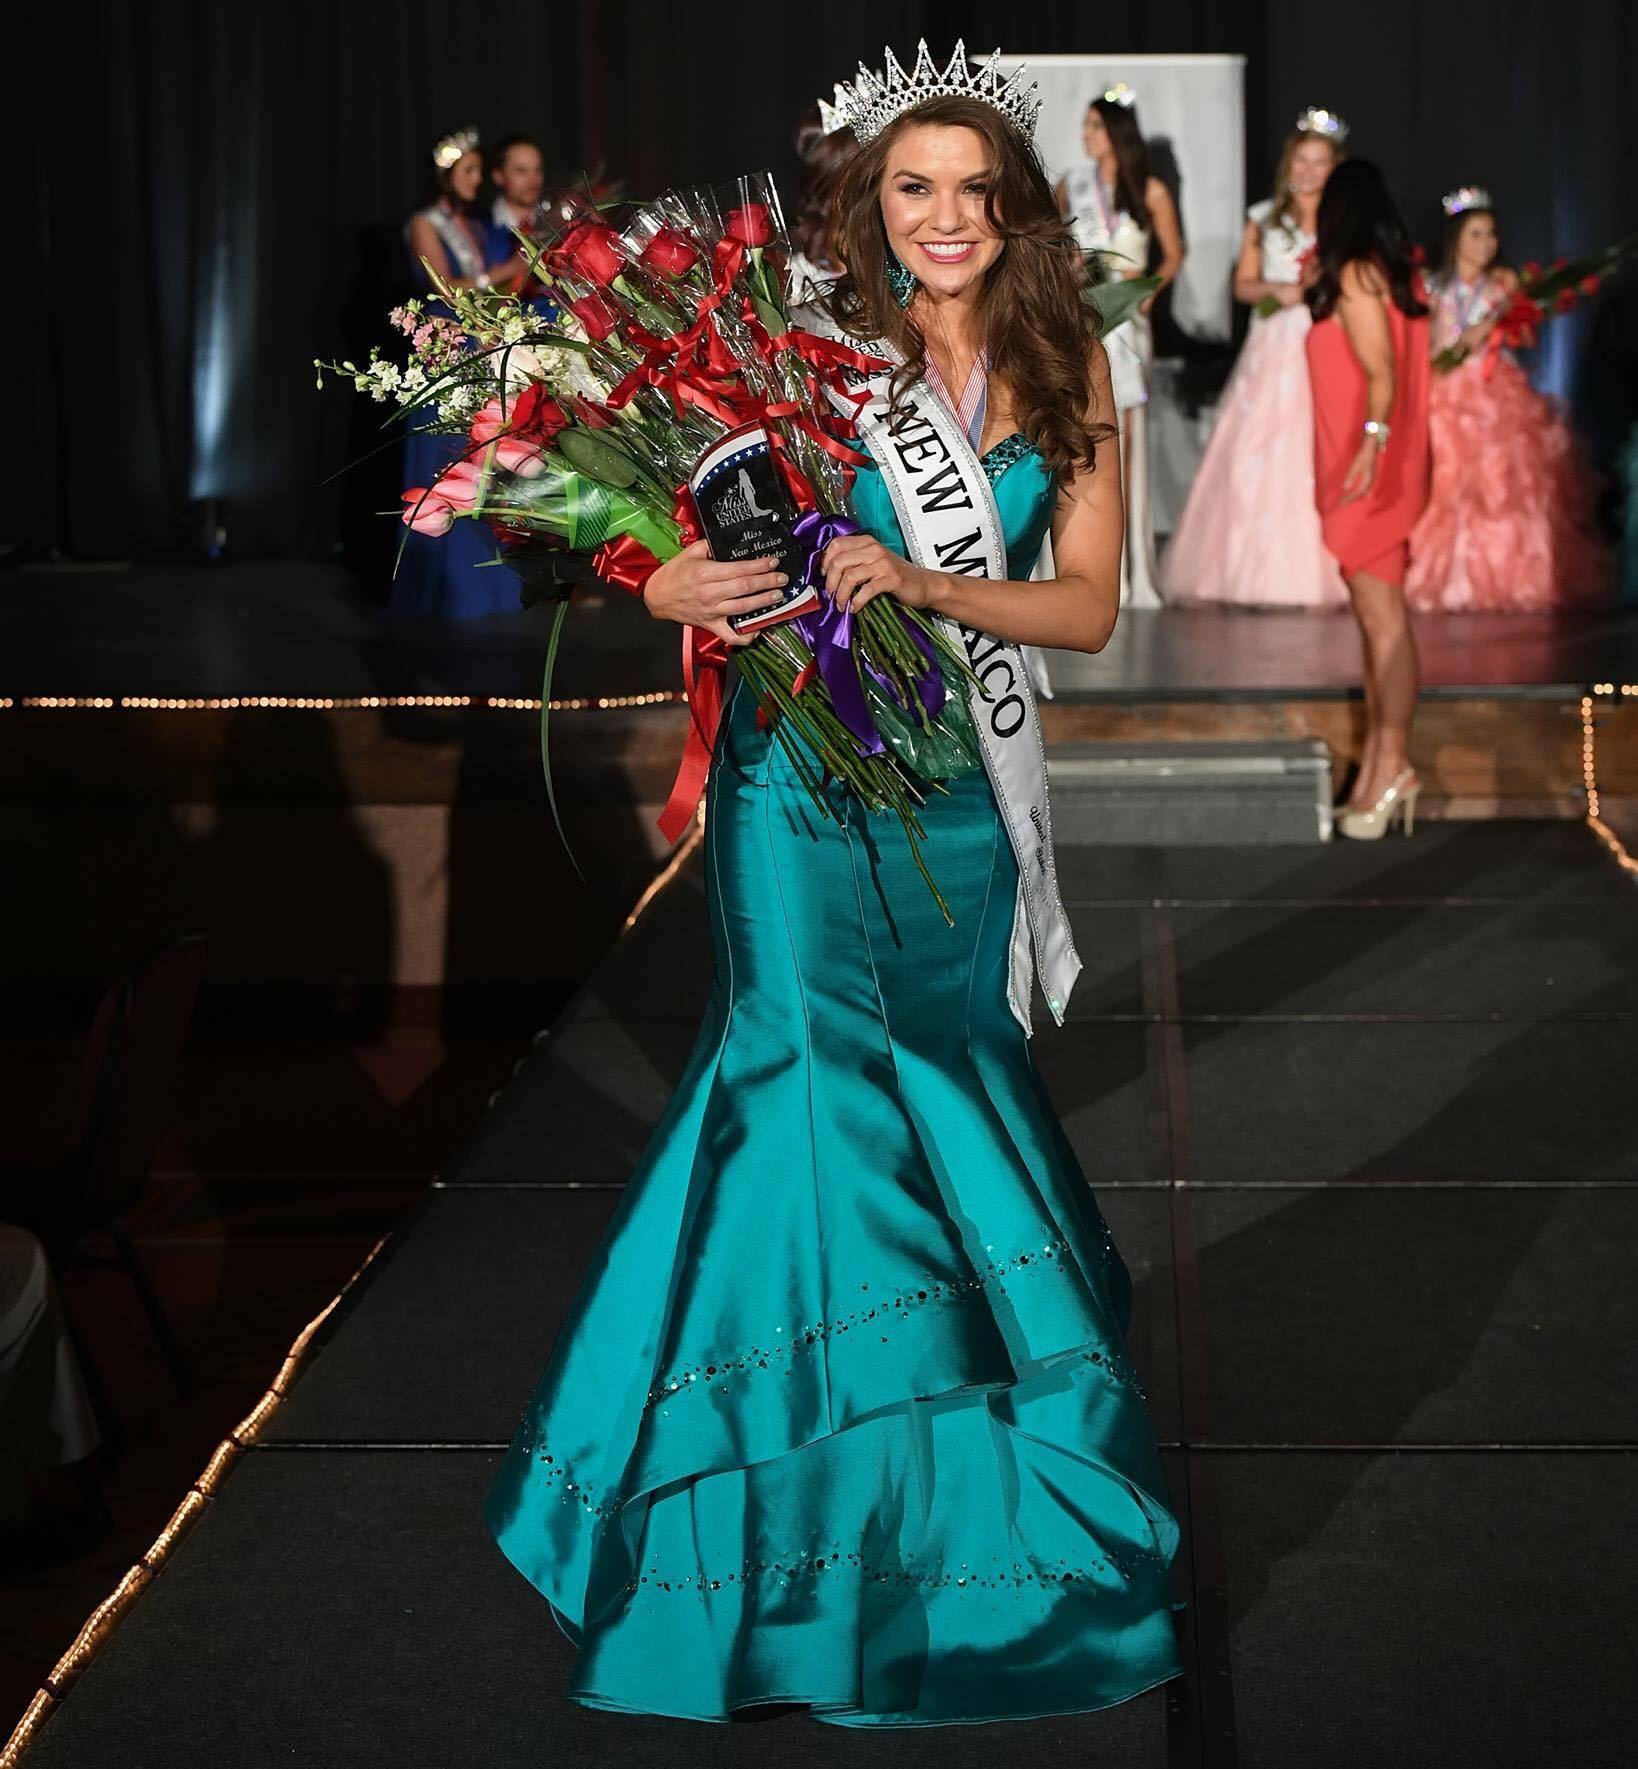 Mescalero Apache woman to compete for Miss United States